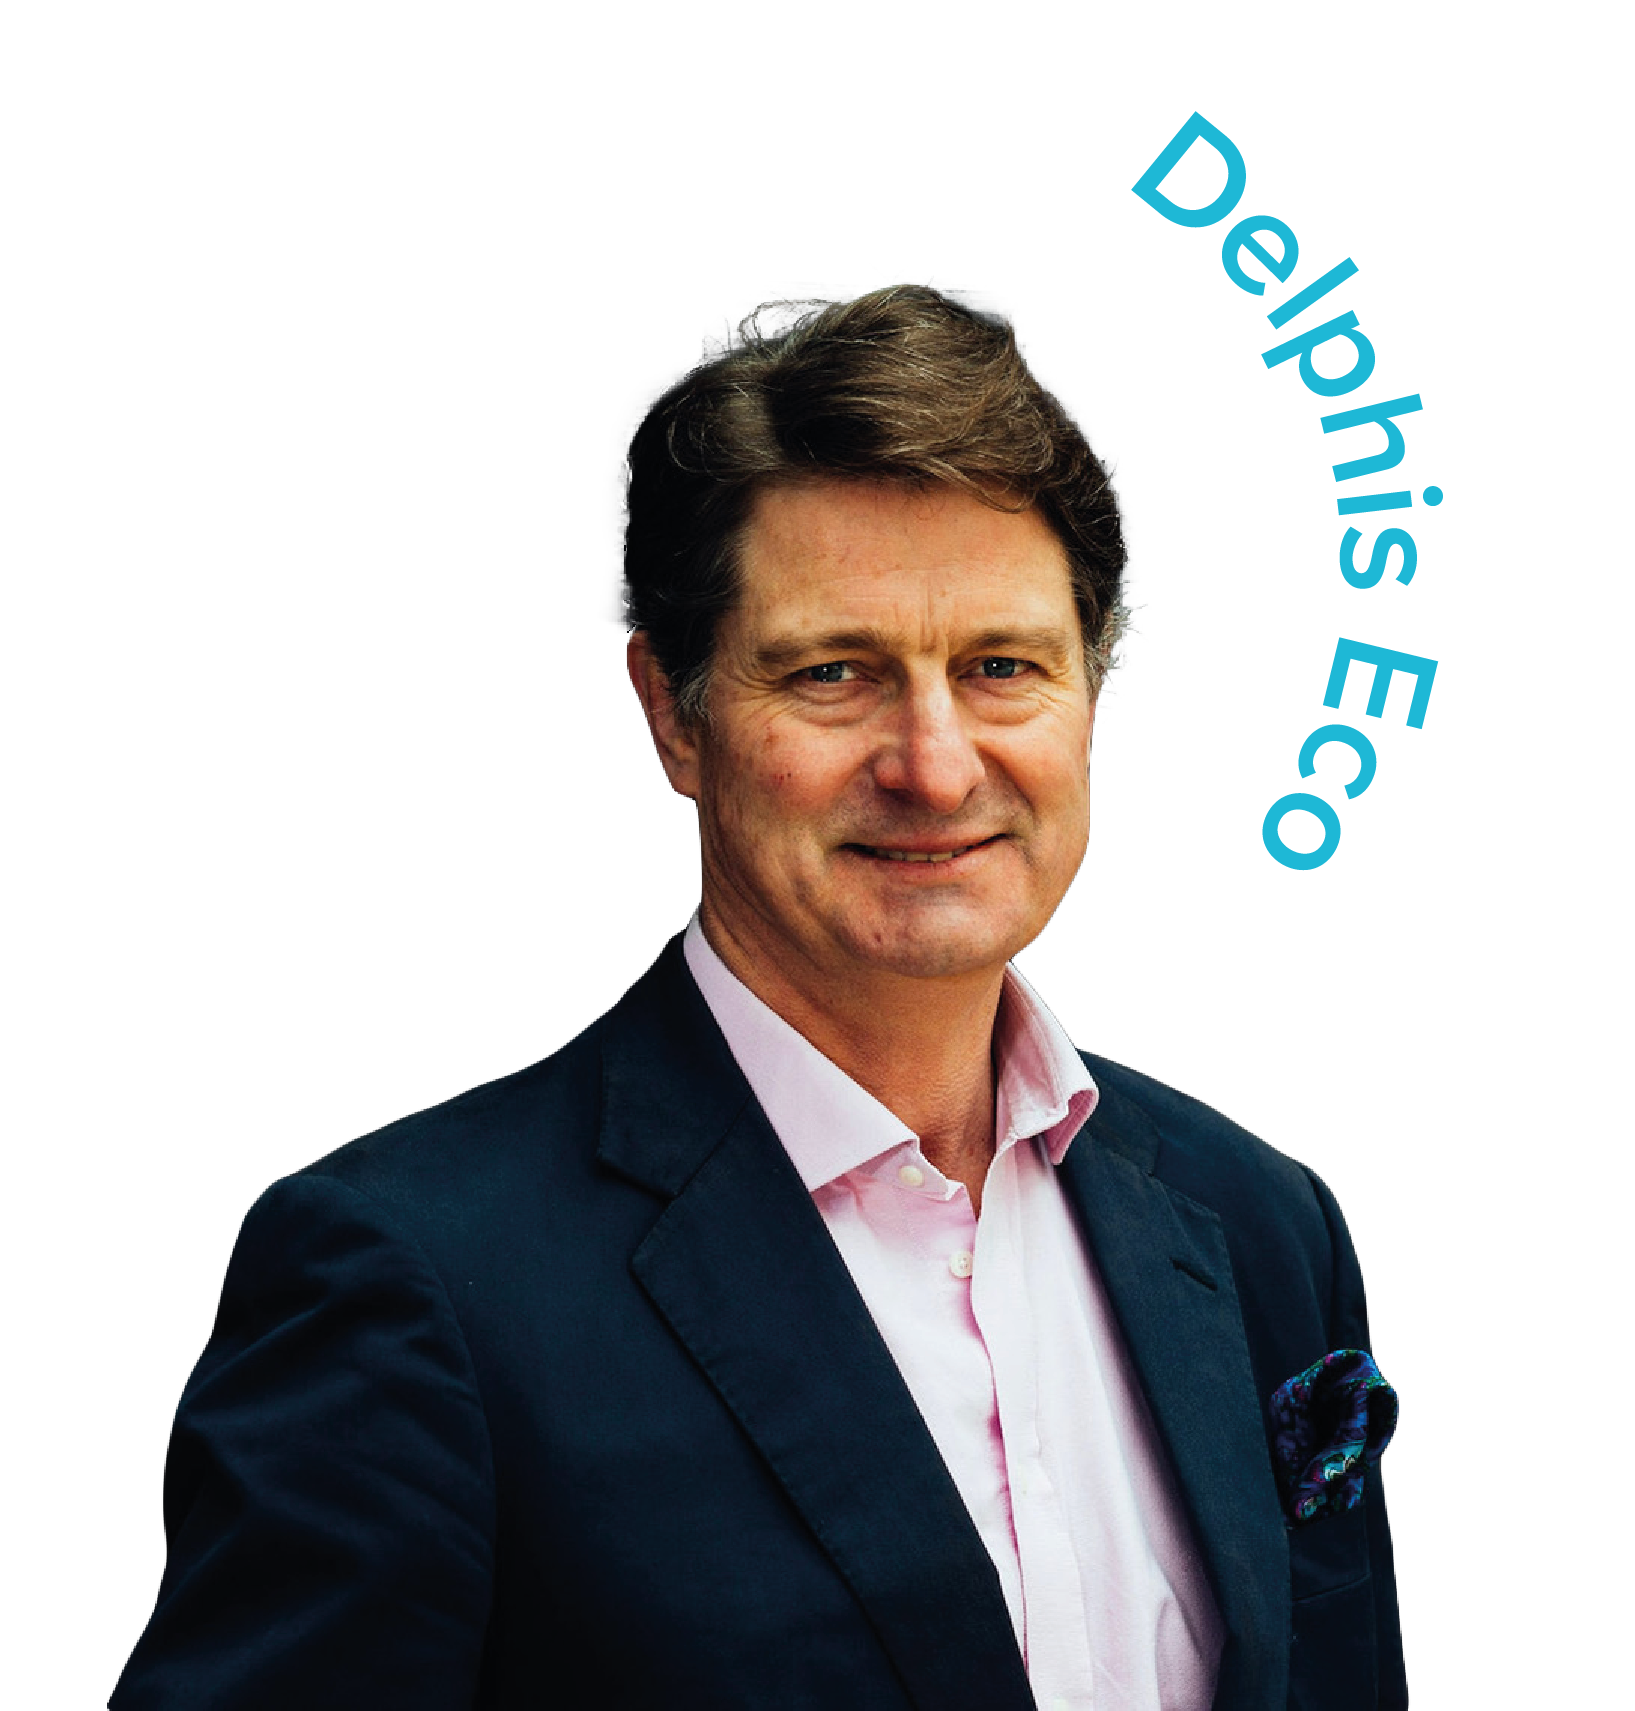 Mark Jankovich Founder and Chief Executive Officer at Delphis Eco